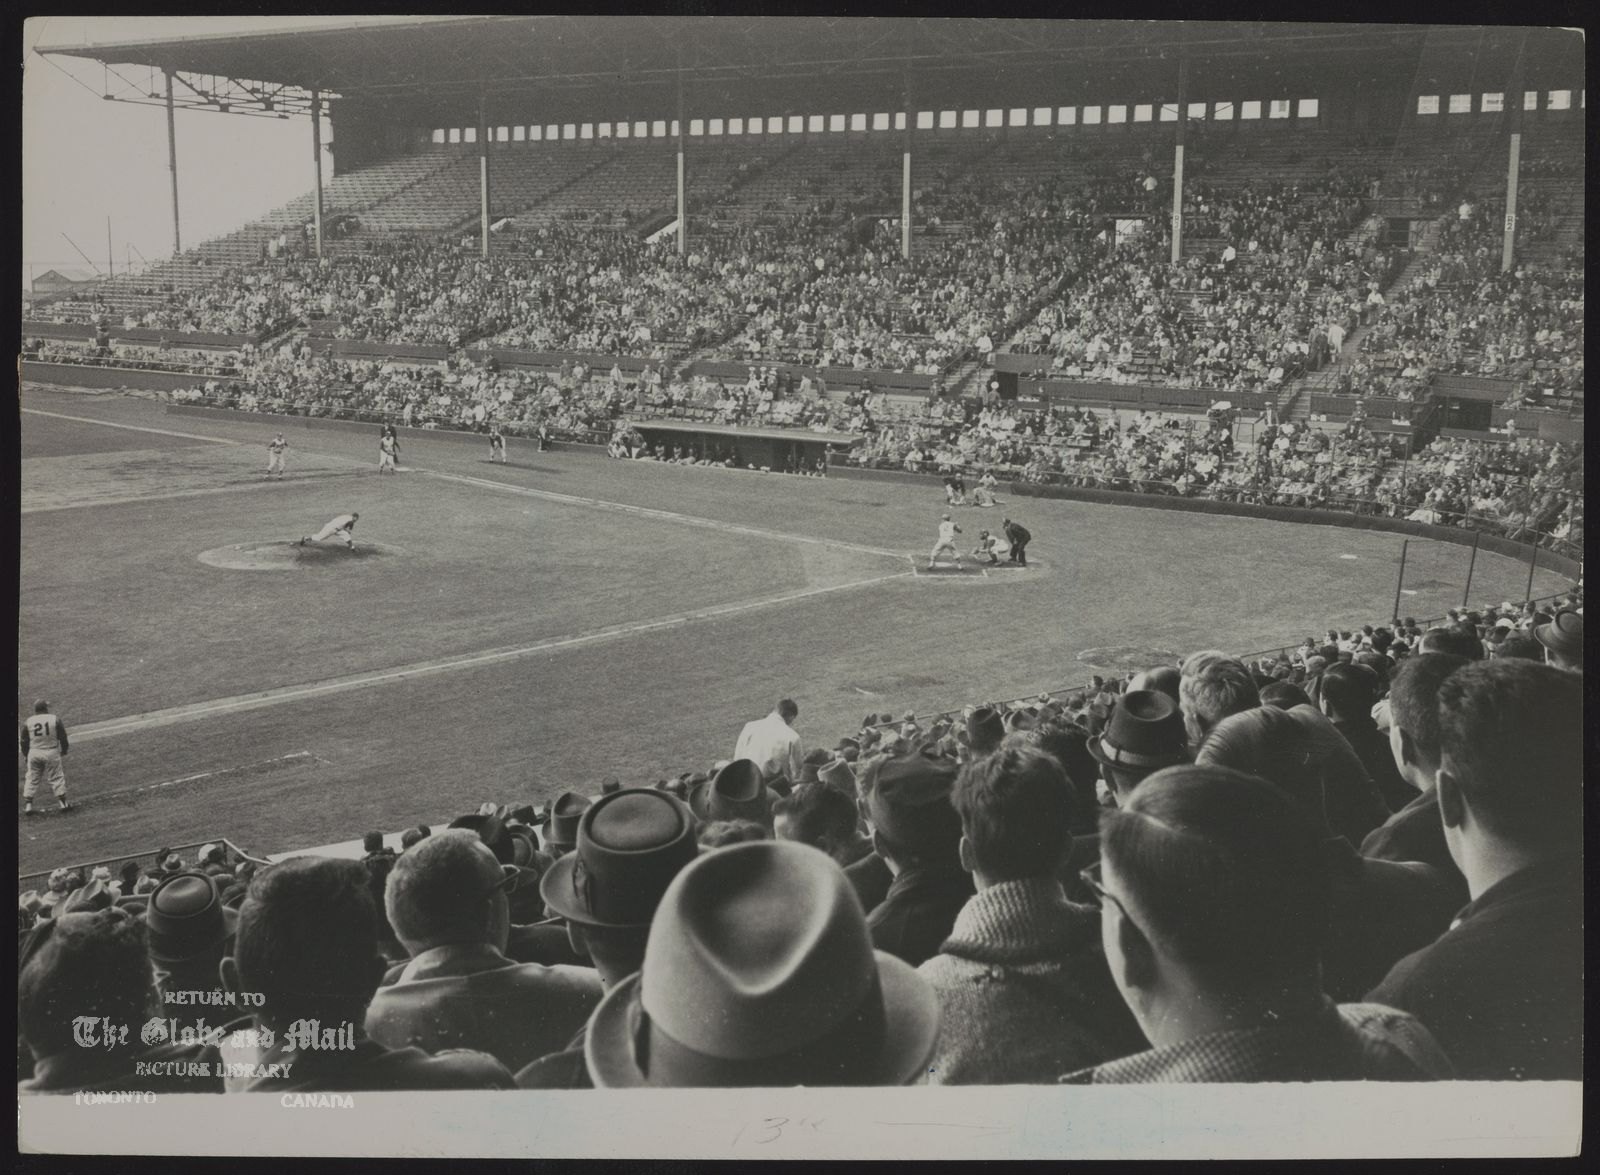 TORONTO MAPLE LEAF BASEBALE CLUB Back Row View of Action at Maple Leaf Stadium Yesterday as 1961 Leafs Belted Out 15-3 Opening Day Win Over Jersey City Steve Ridzik pitches to Octavio Rojas in first inning. Crowd of 10,272 saw Lests in homer-hitting mood.